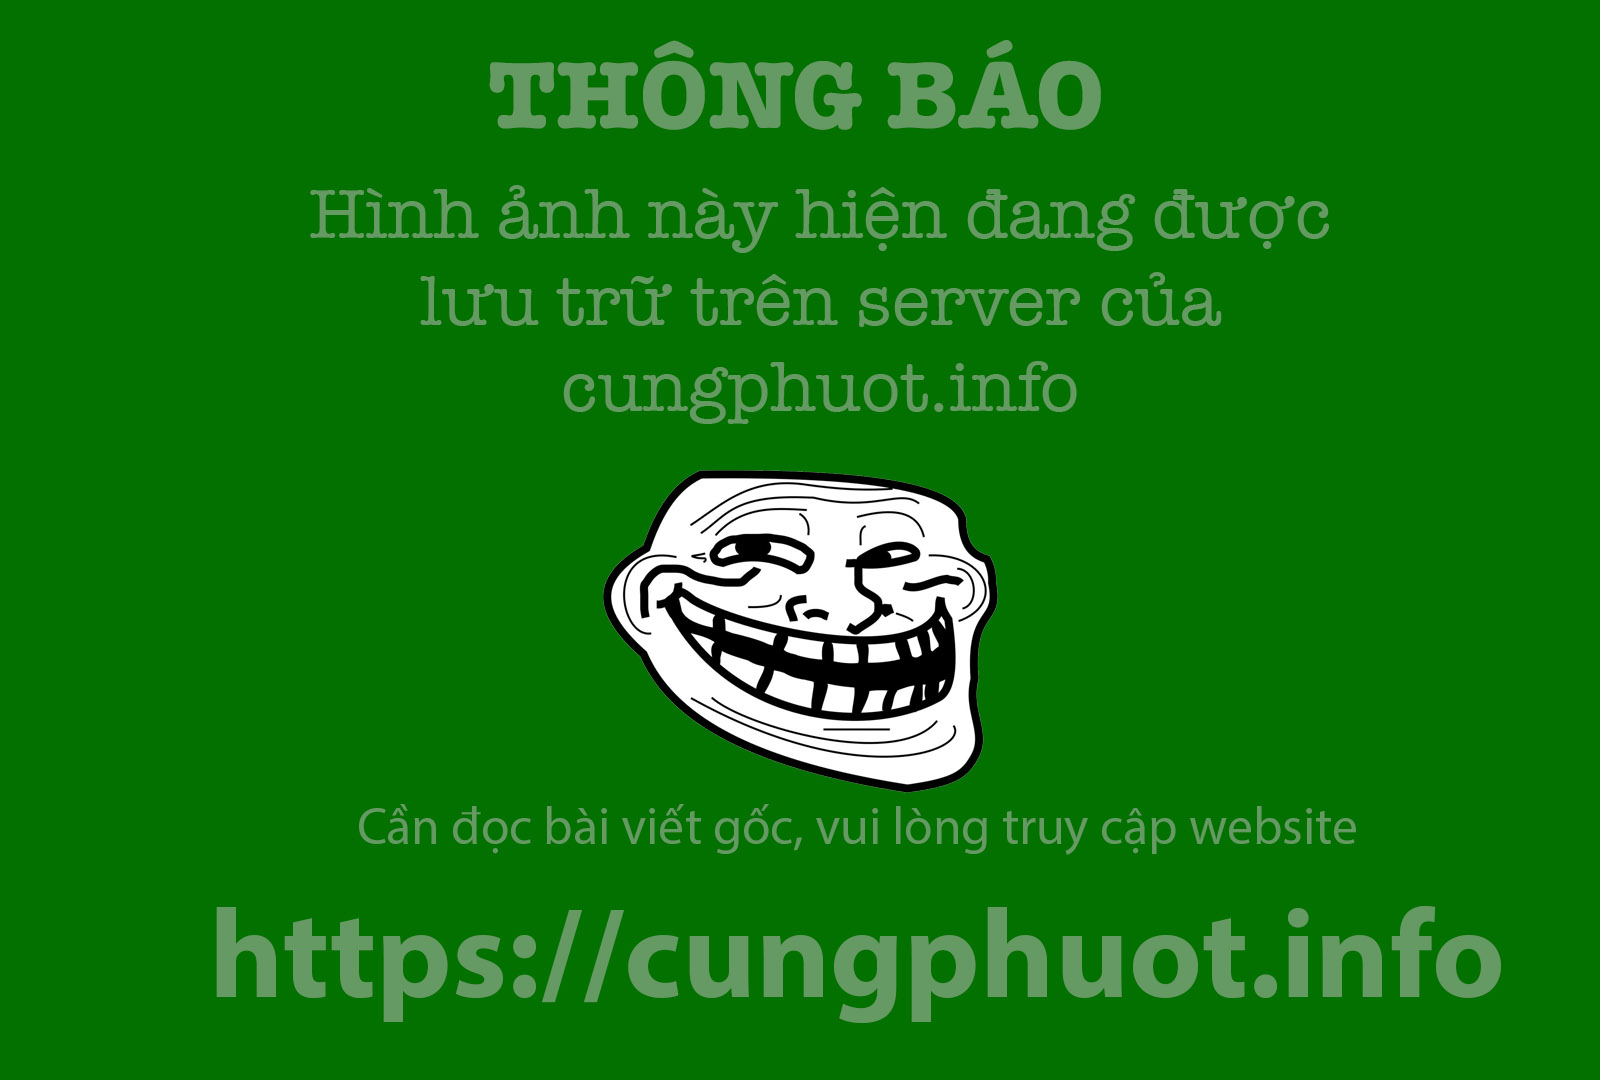 Hotels and Motels in Da Bac, Hoa Binh, Vietnam